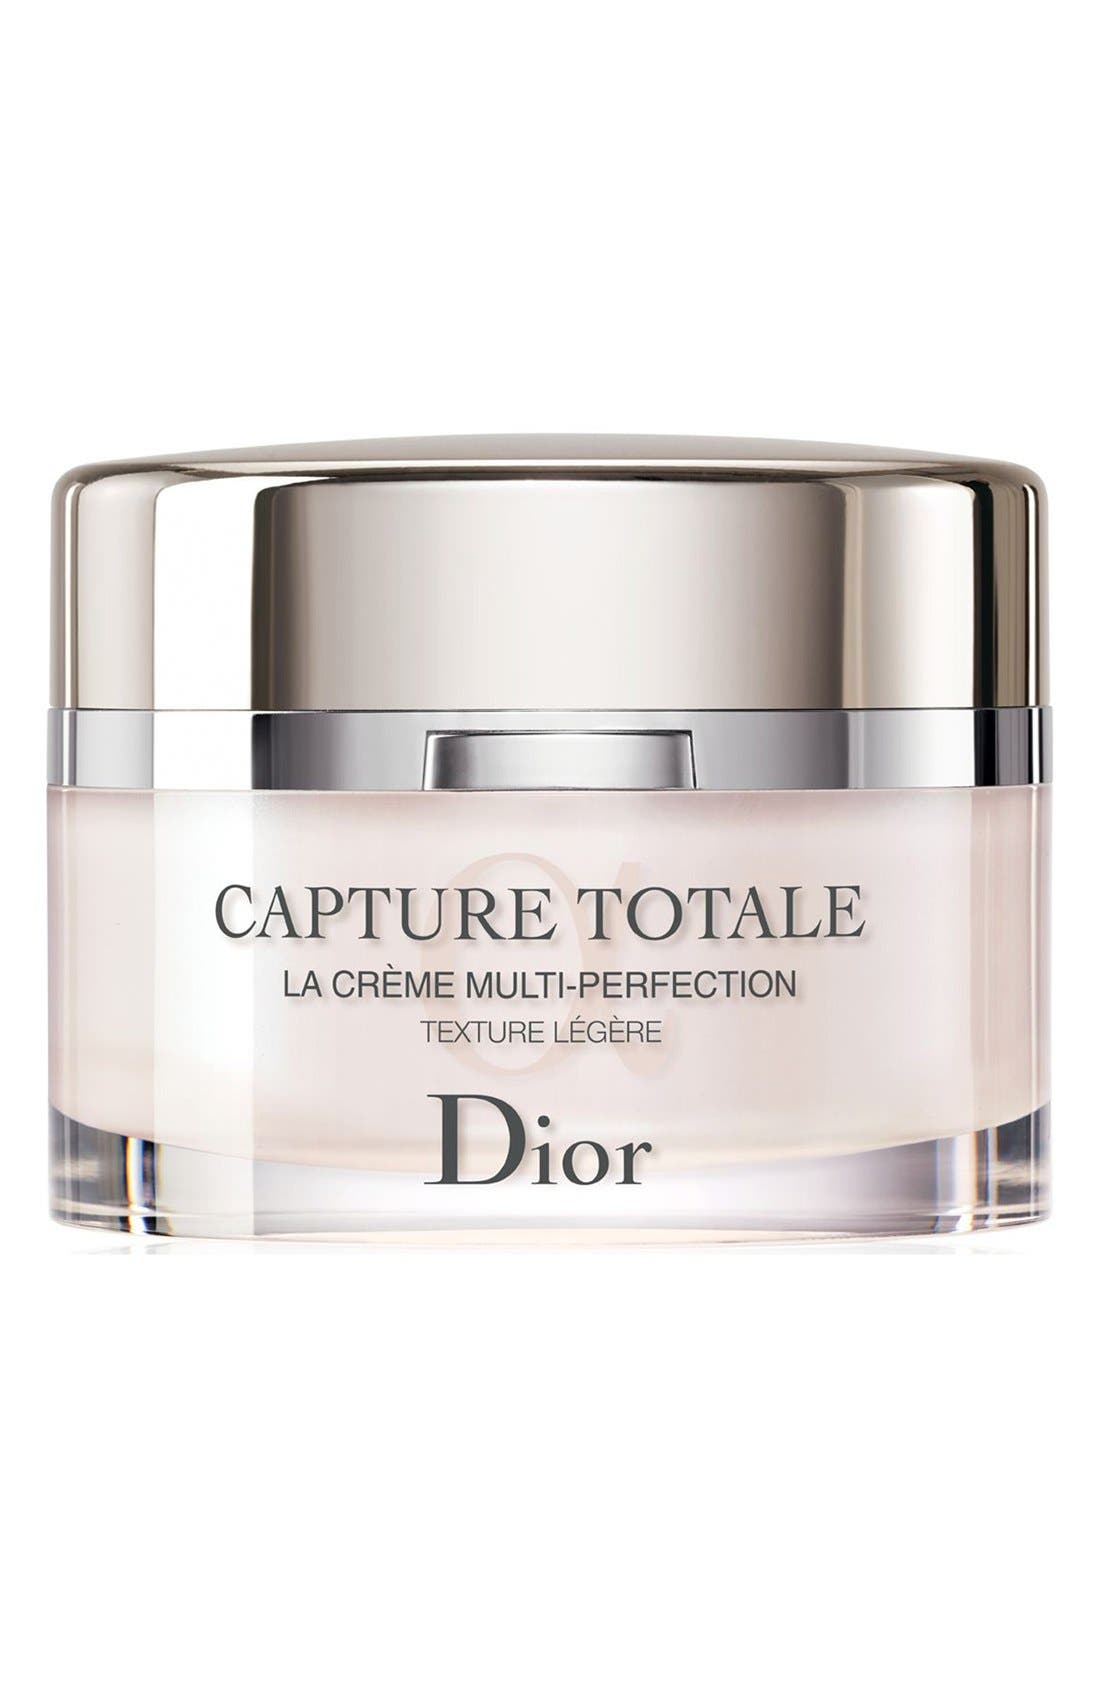 Capture Totale - Light Texture Multi-Perfection Creme,                         Main,                         color, NO COLOR